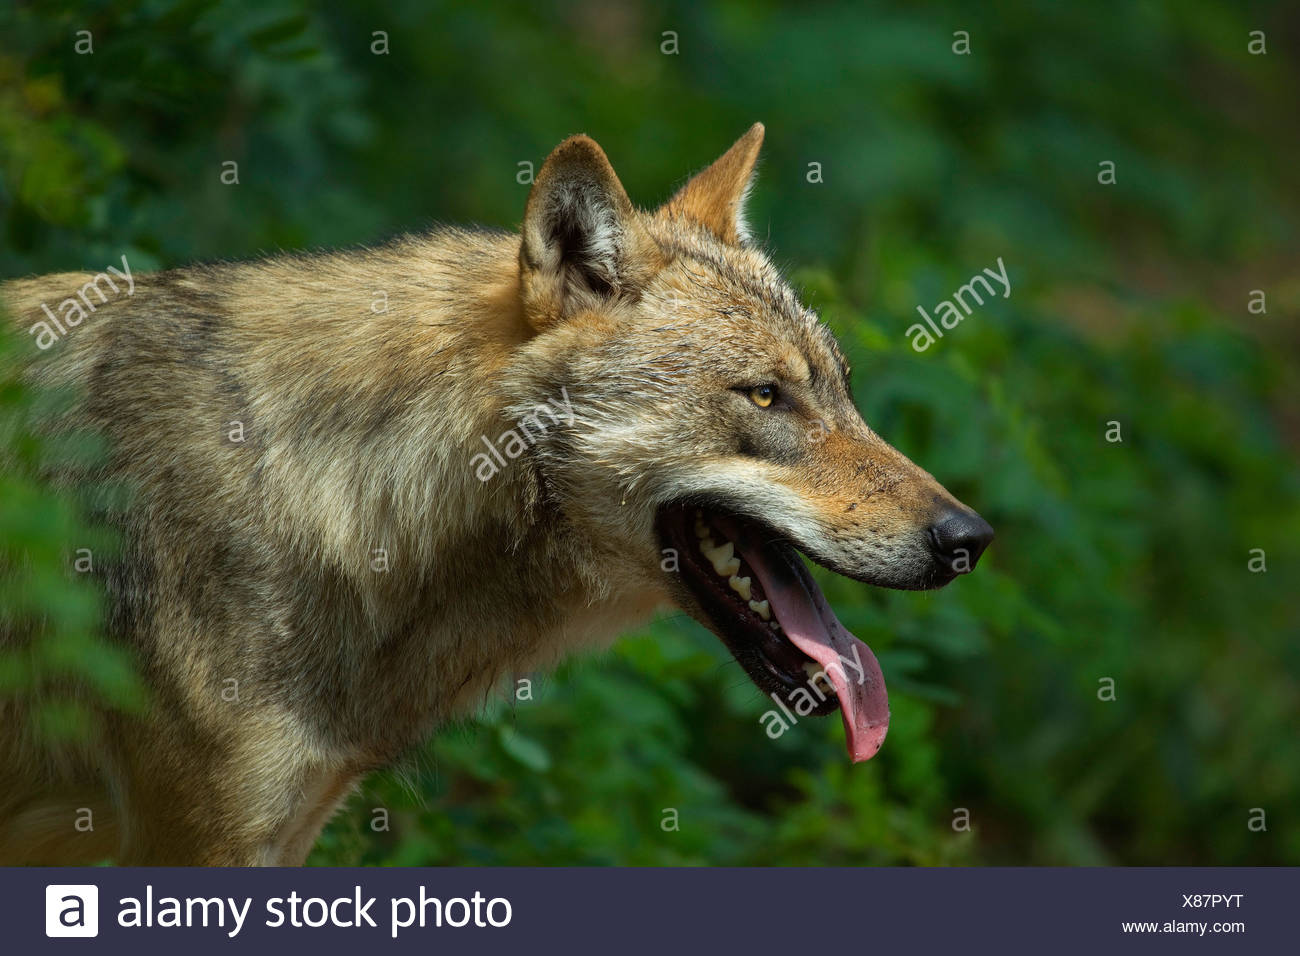 European gray wolf (Canis lupus lupus), panting, Germany - Stock Image